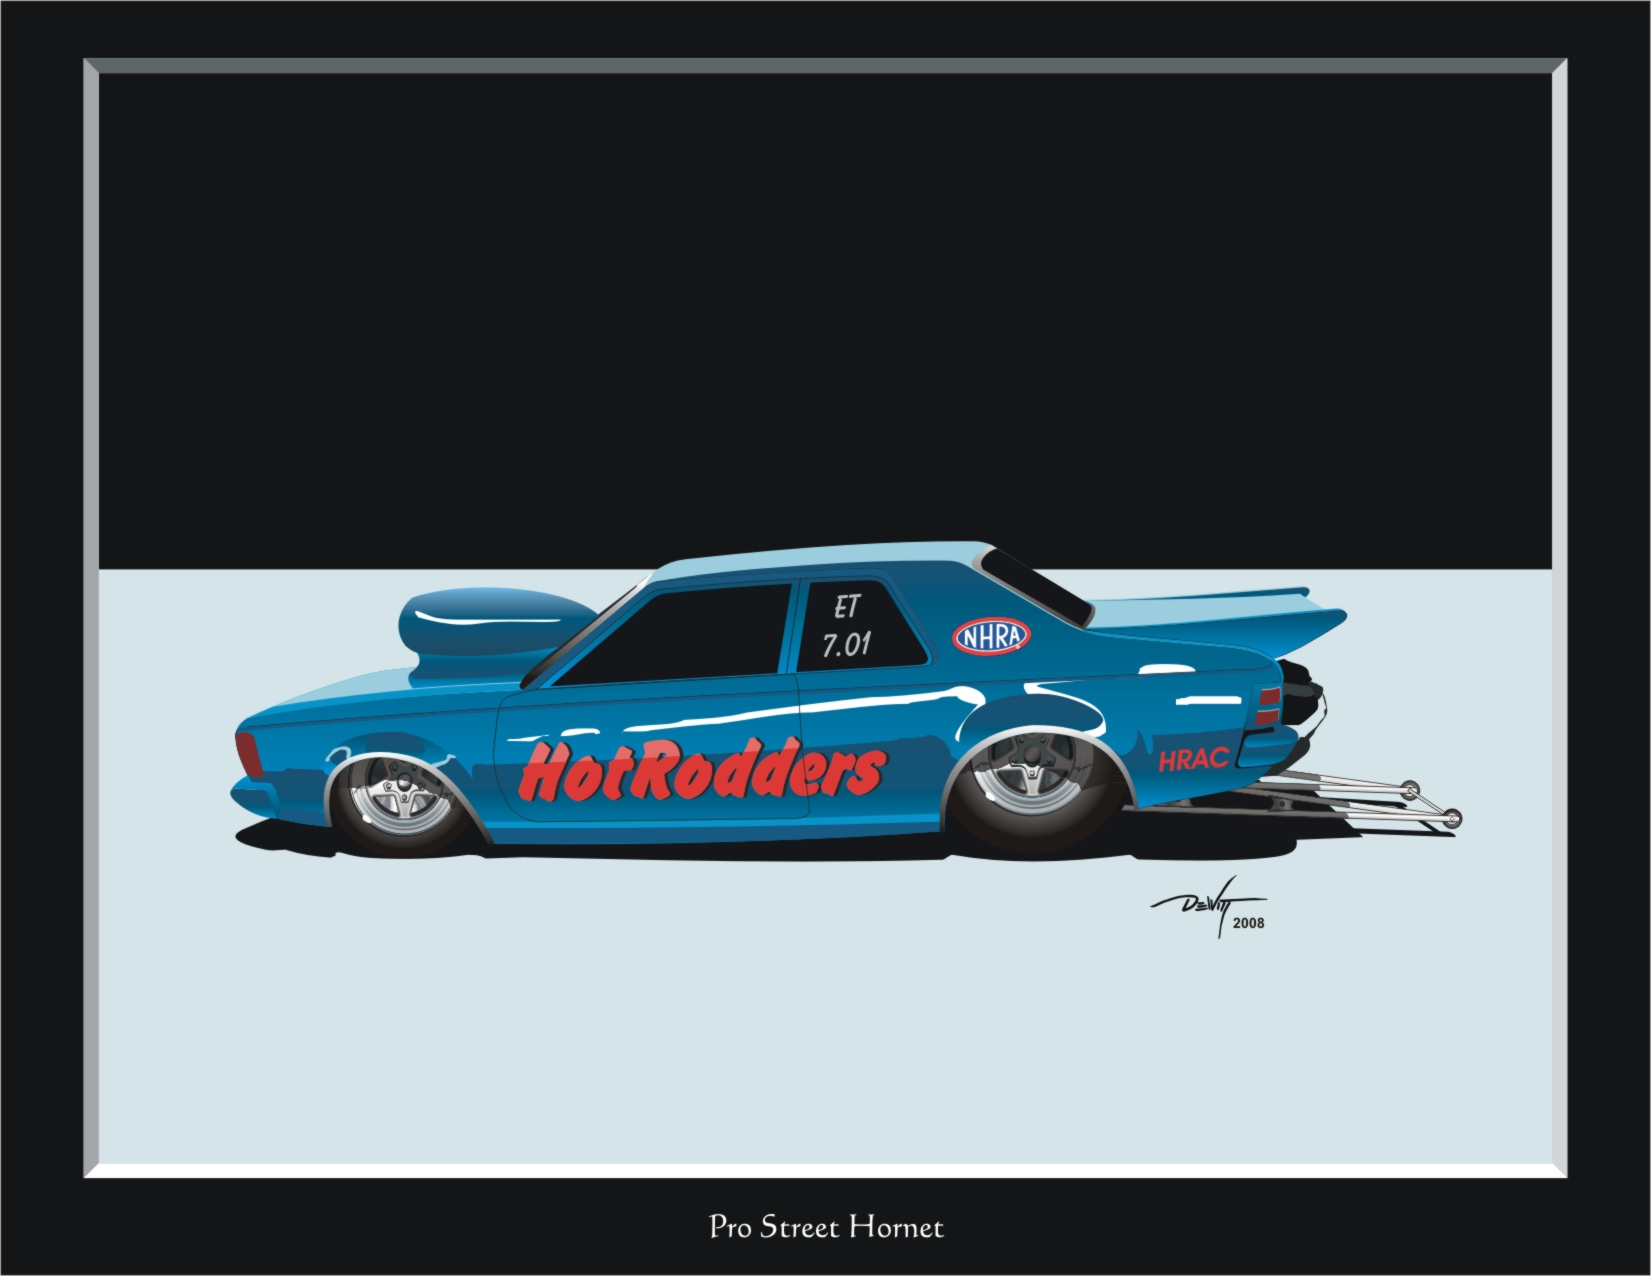 Click image for larger version  Name:Pro Street Hornet 150.jpg Views:174 Size:271.1 KB ID:27334